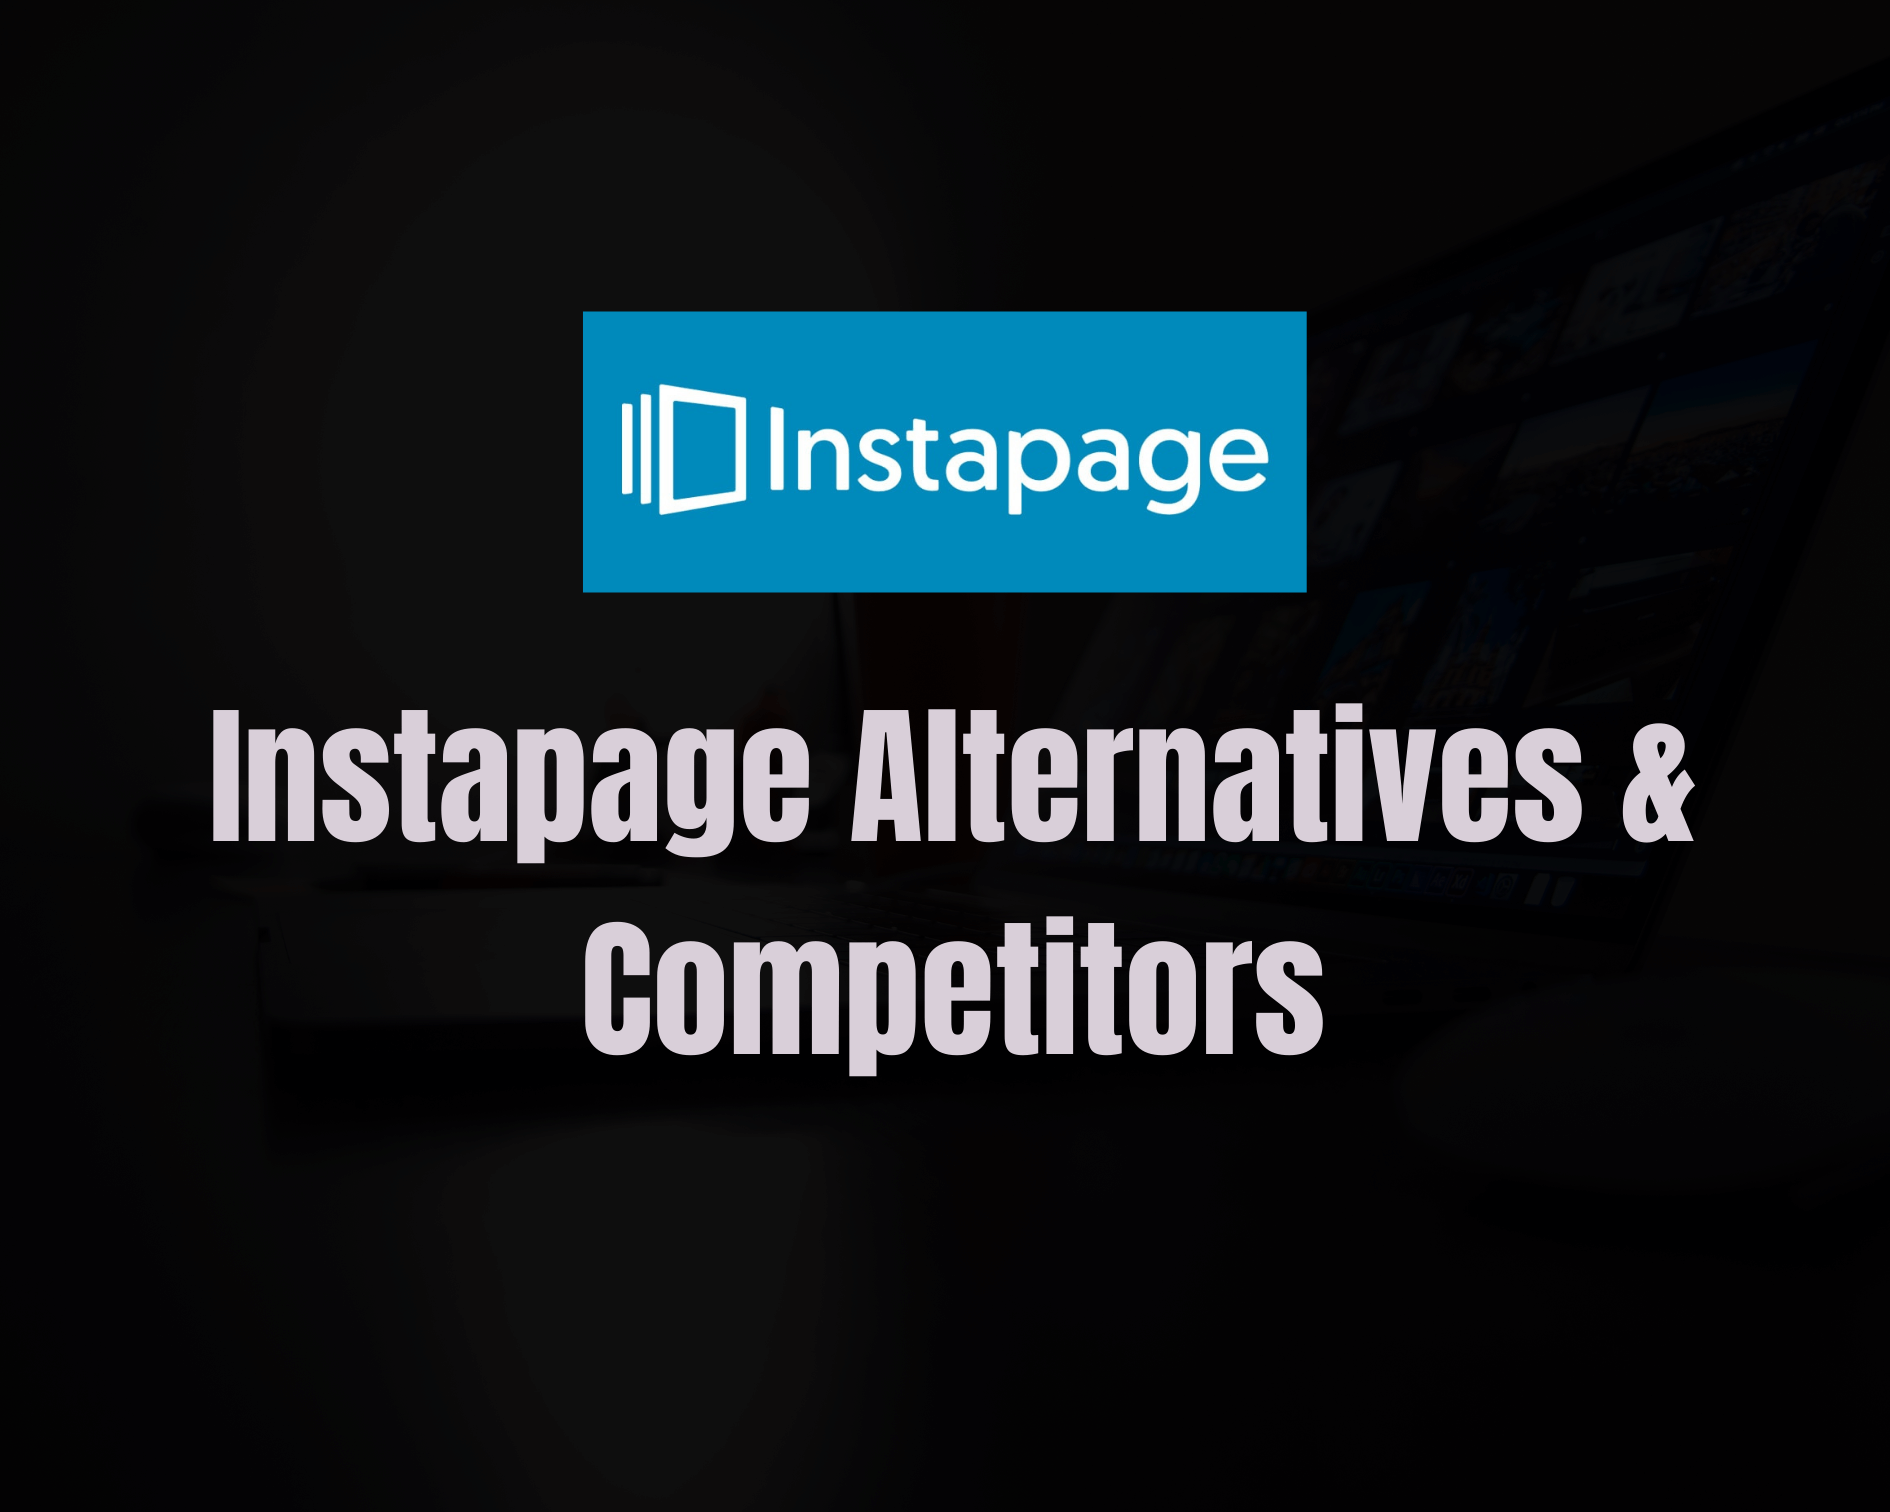 5 Best Instapage Alternatives & Competitors in 2020